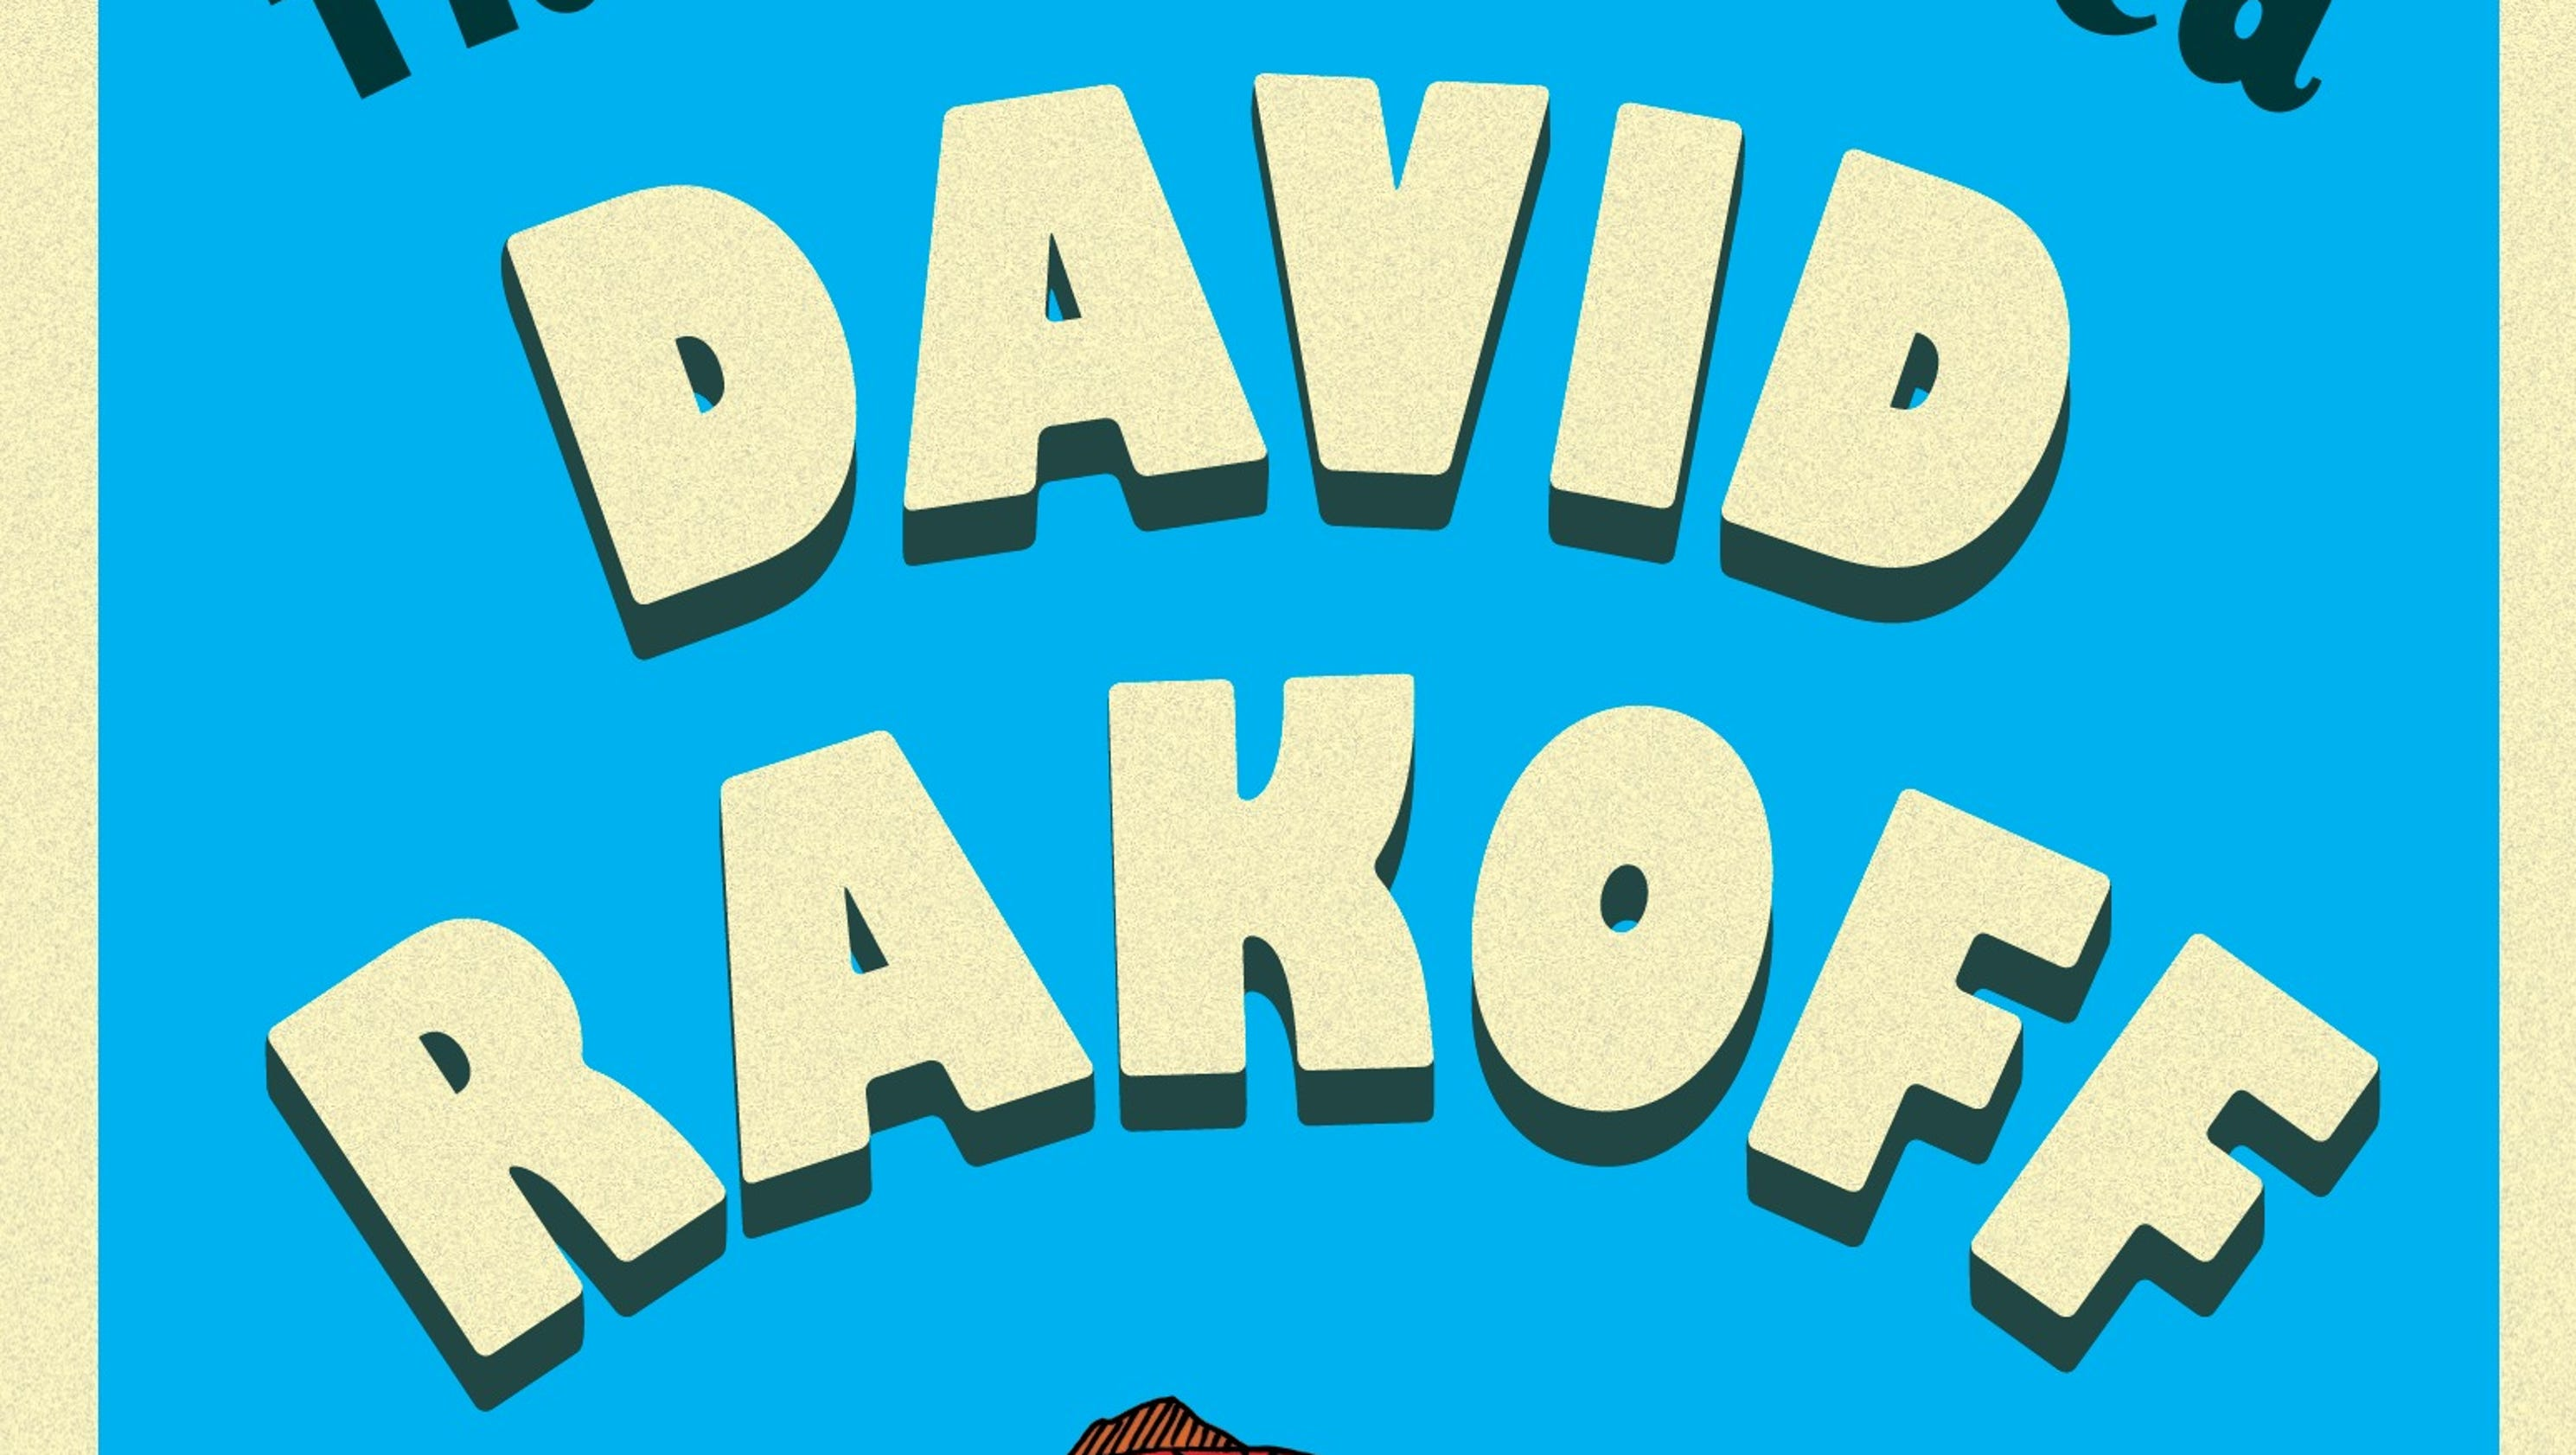 david rakoff essays online David rakoff essays - papers and essays at most affordable prices forget about those sleepless nights working on your report with our custom writing help original.